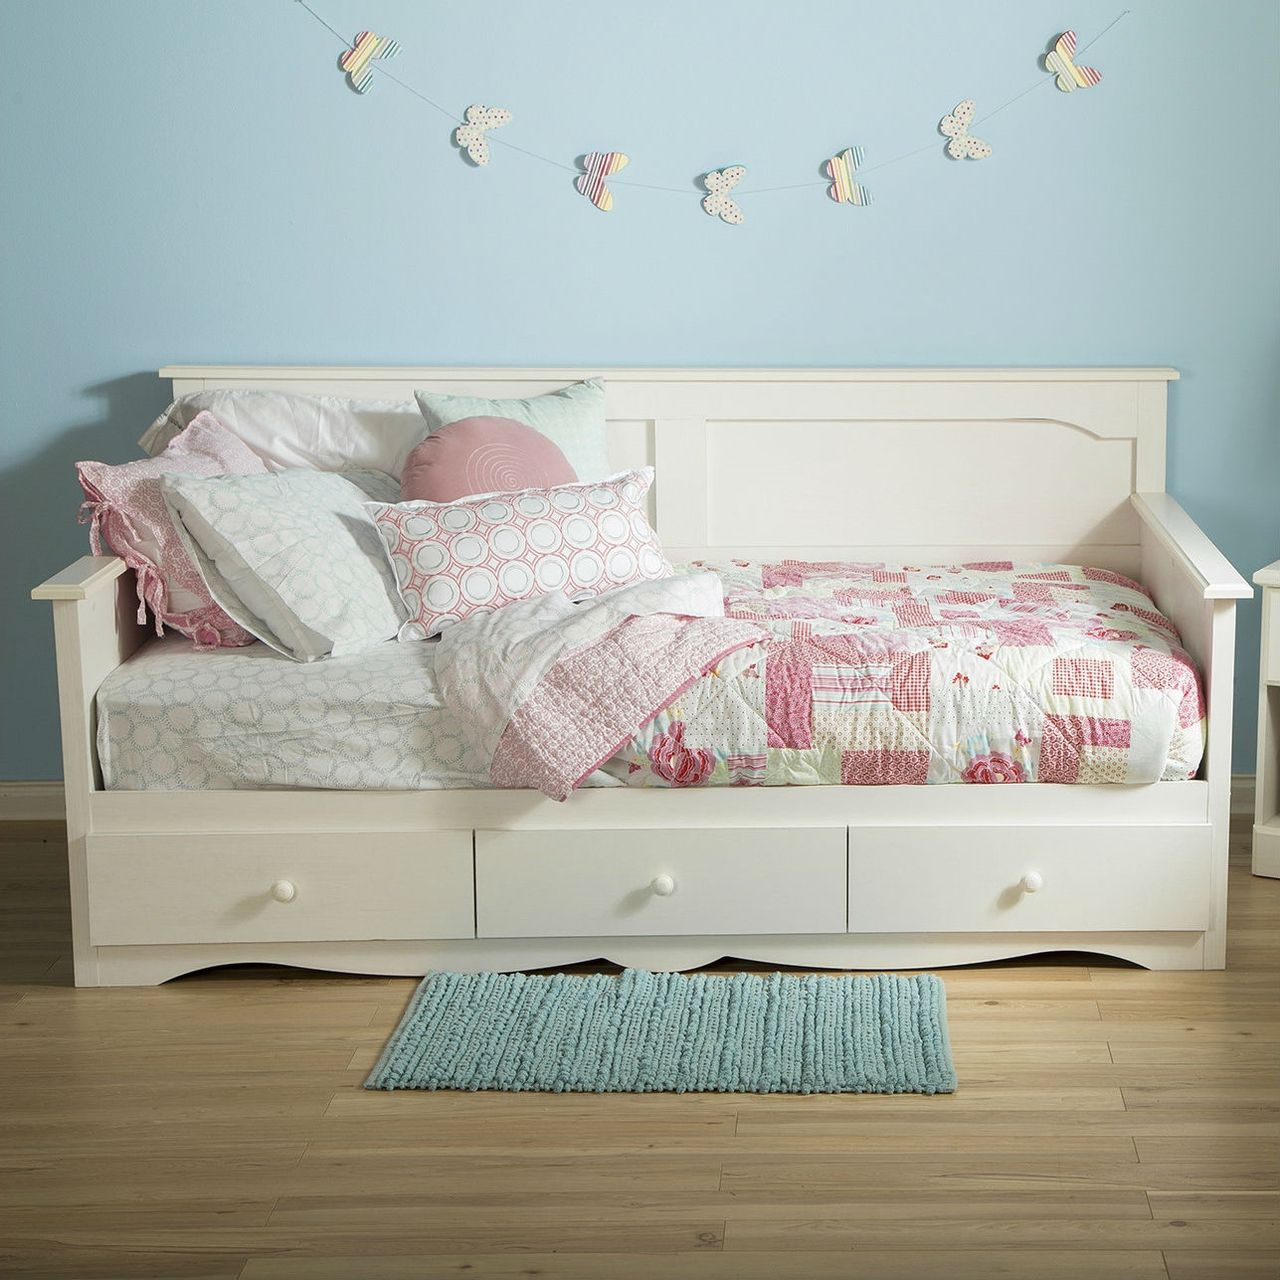 Twin Country Style White Wood Daybed with 3 Storage Drawers - Twin Country Style White Wood Daybed With 3 Storage Drawers